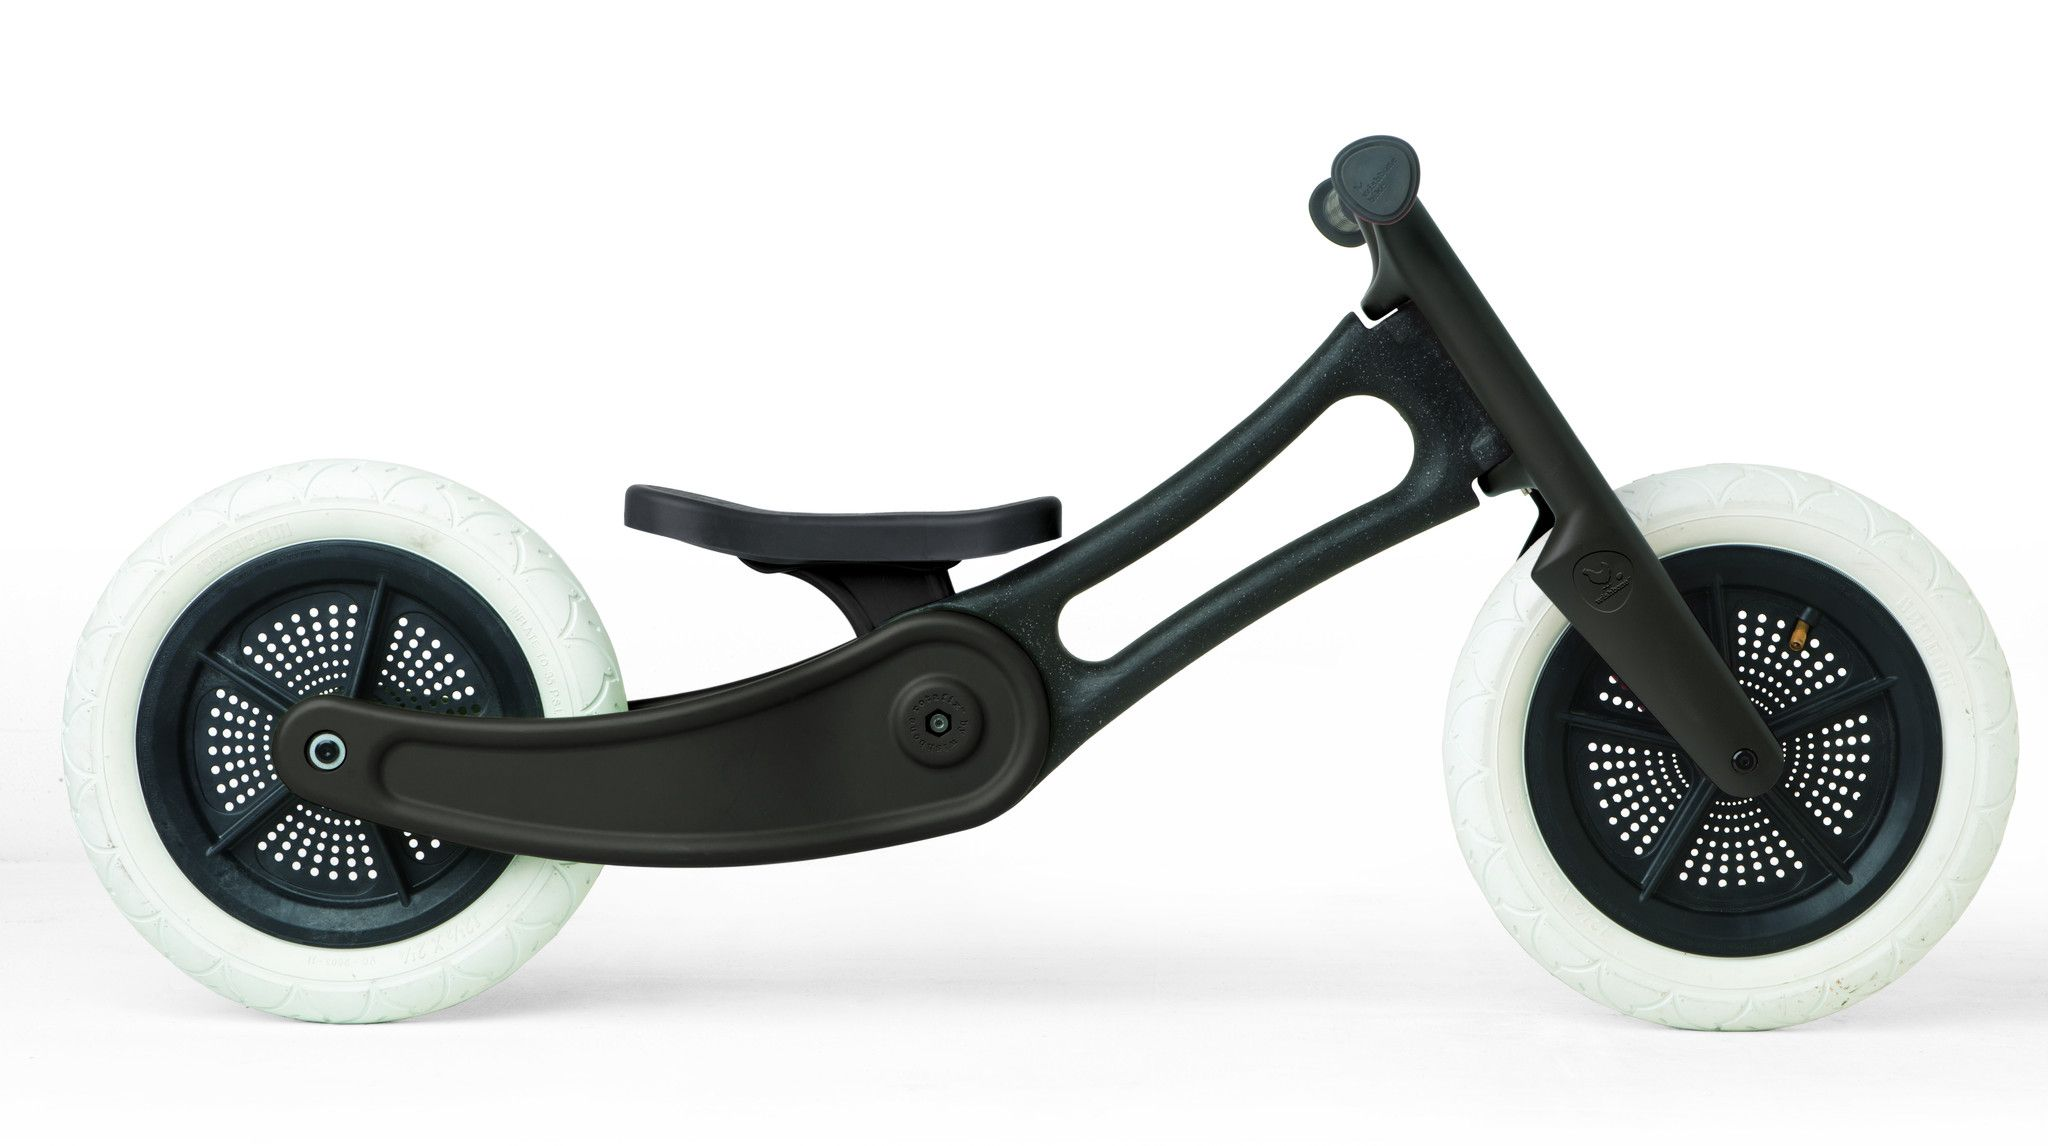 Child S Wishbone Balance Bike 3 In 1 Recycled Edition Ride On